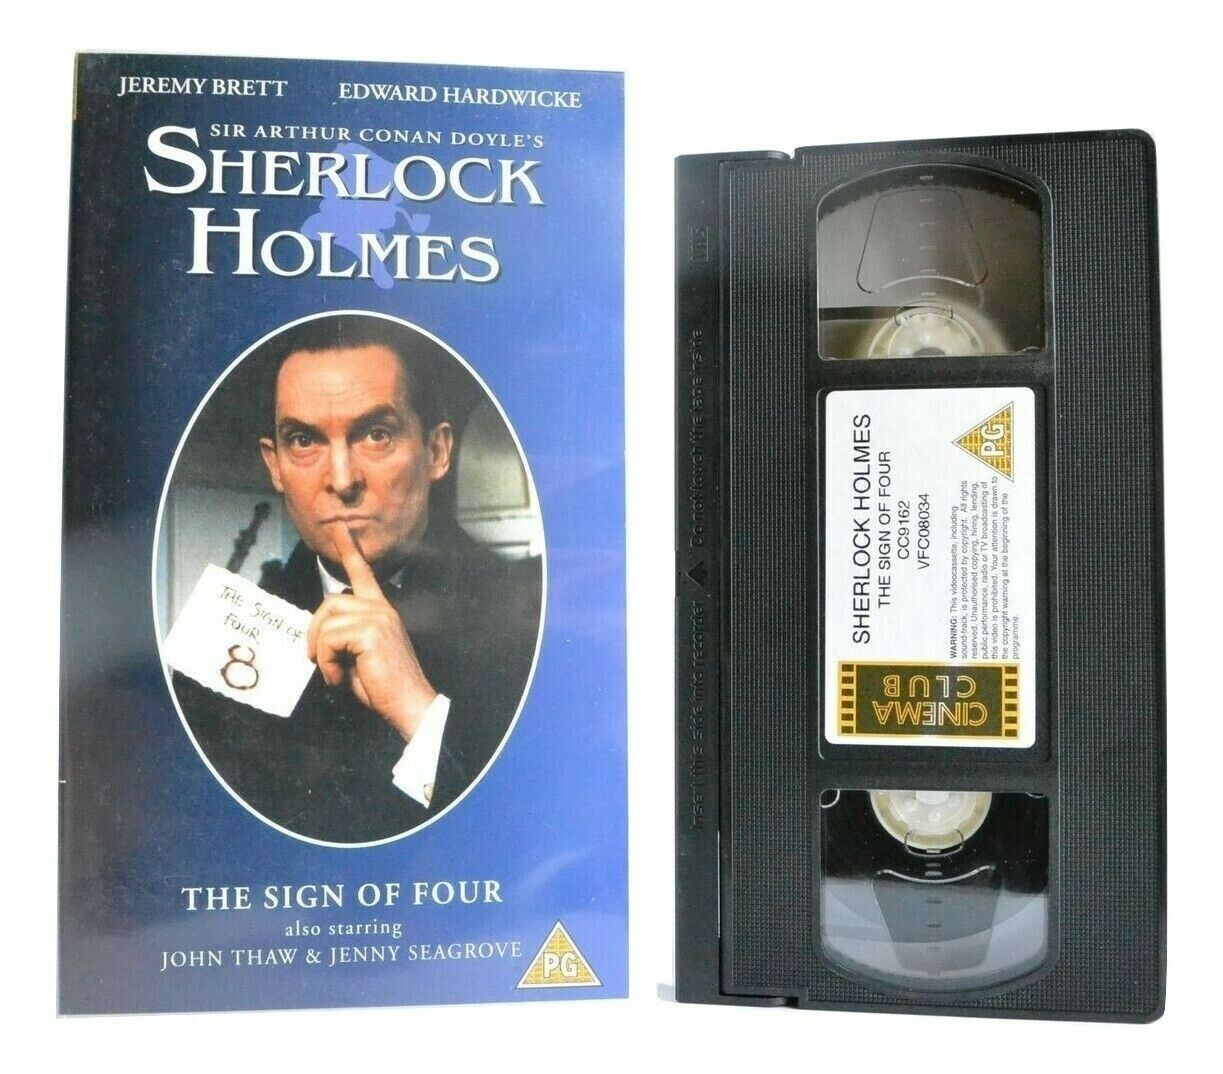 Sherlock Holmes: The Sign Of Four - TV Movie - Crime Drama - J.Brett - Pal VHS